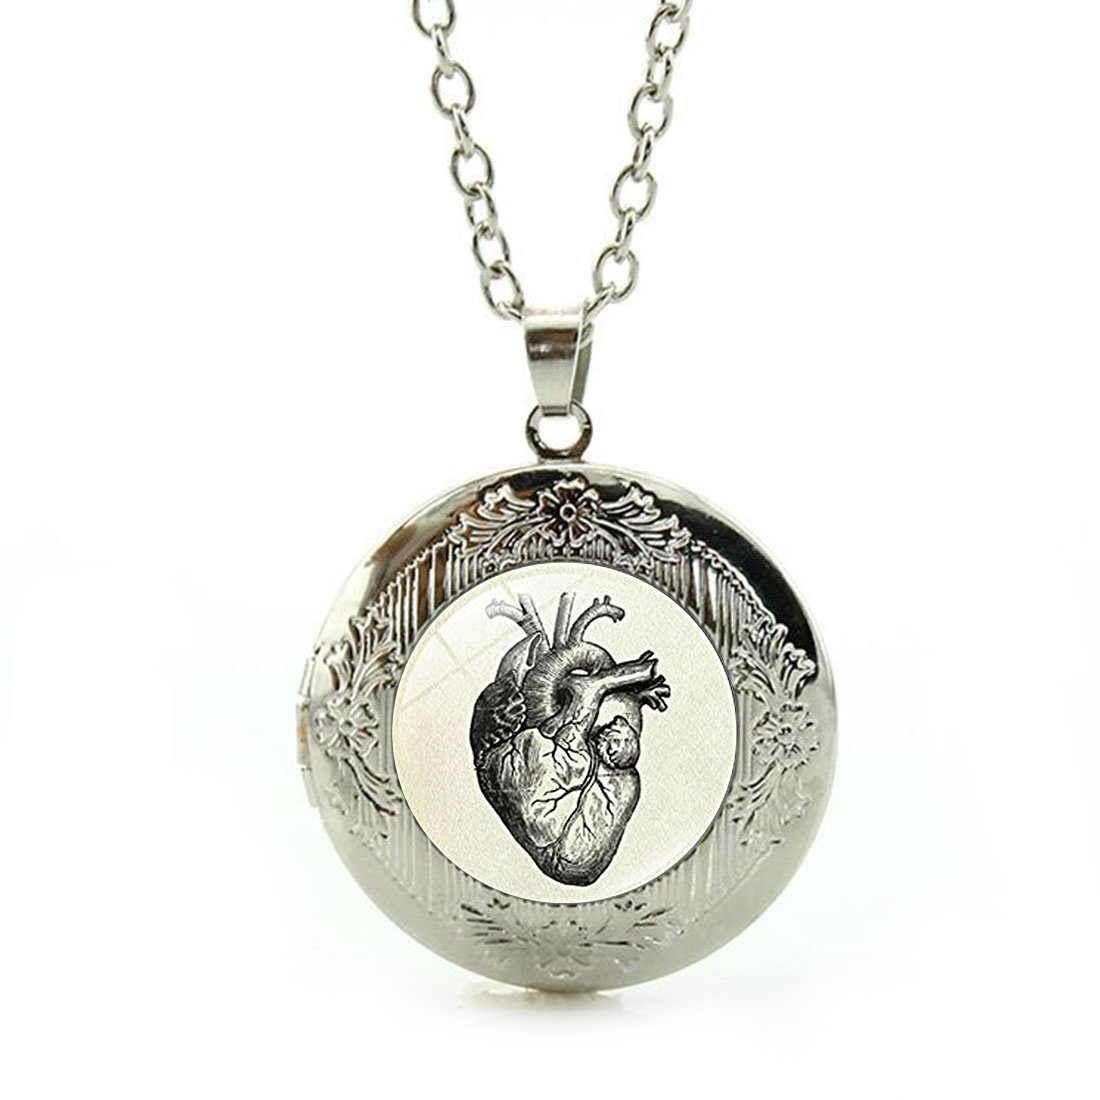 Women's Custom Locket Closure Pendant Necklace Heart Anatomical Drawing Included Free Silver Chain, Best Gift Set